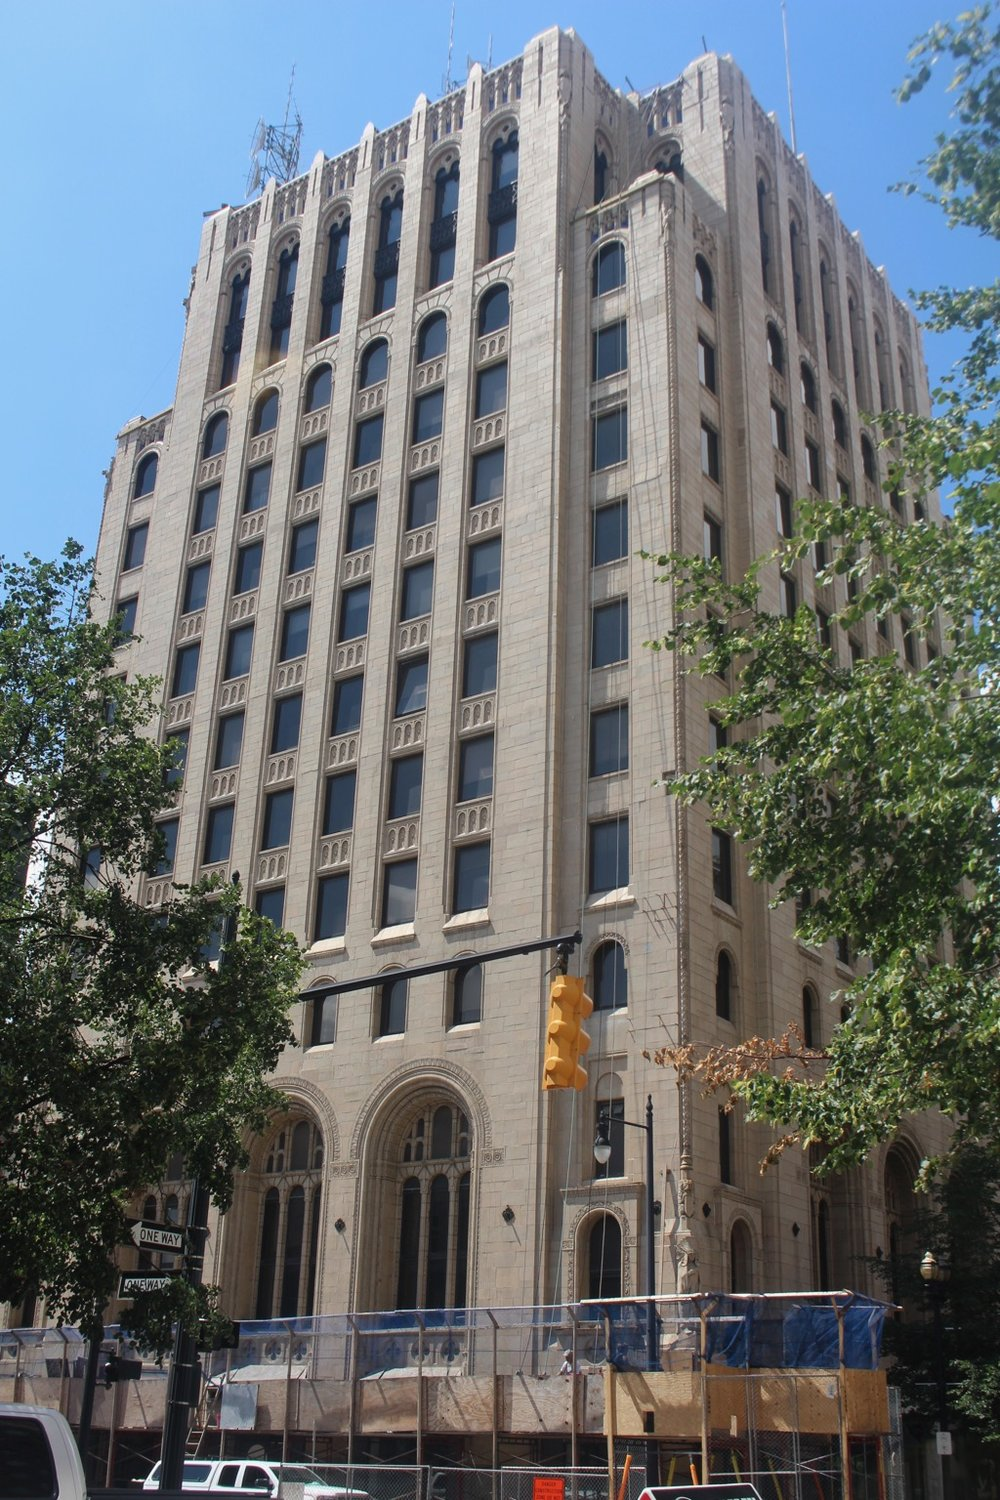 77 MONROE CENTER NW - MICHIGAN NATIONAL BANK